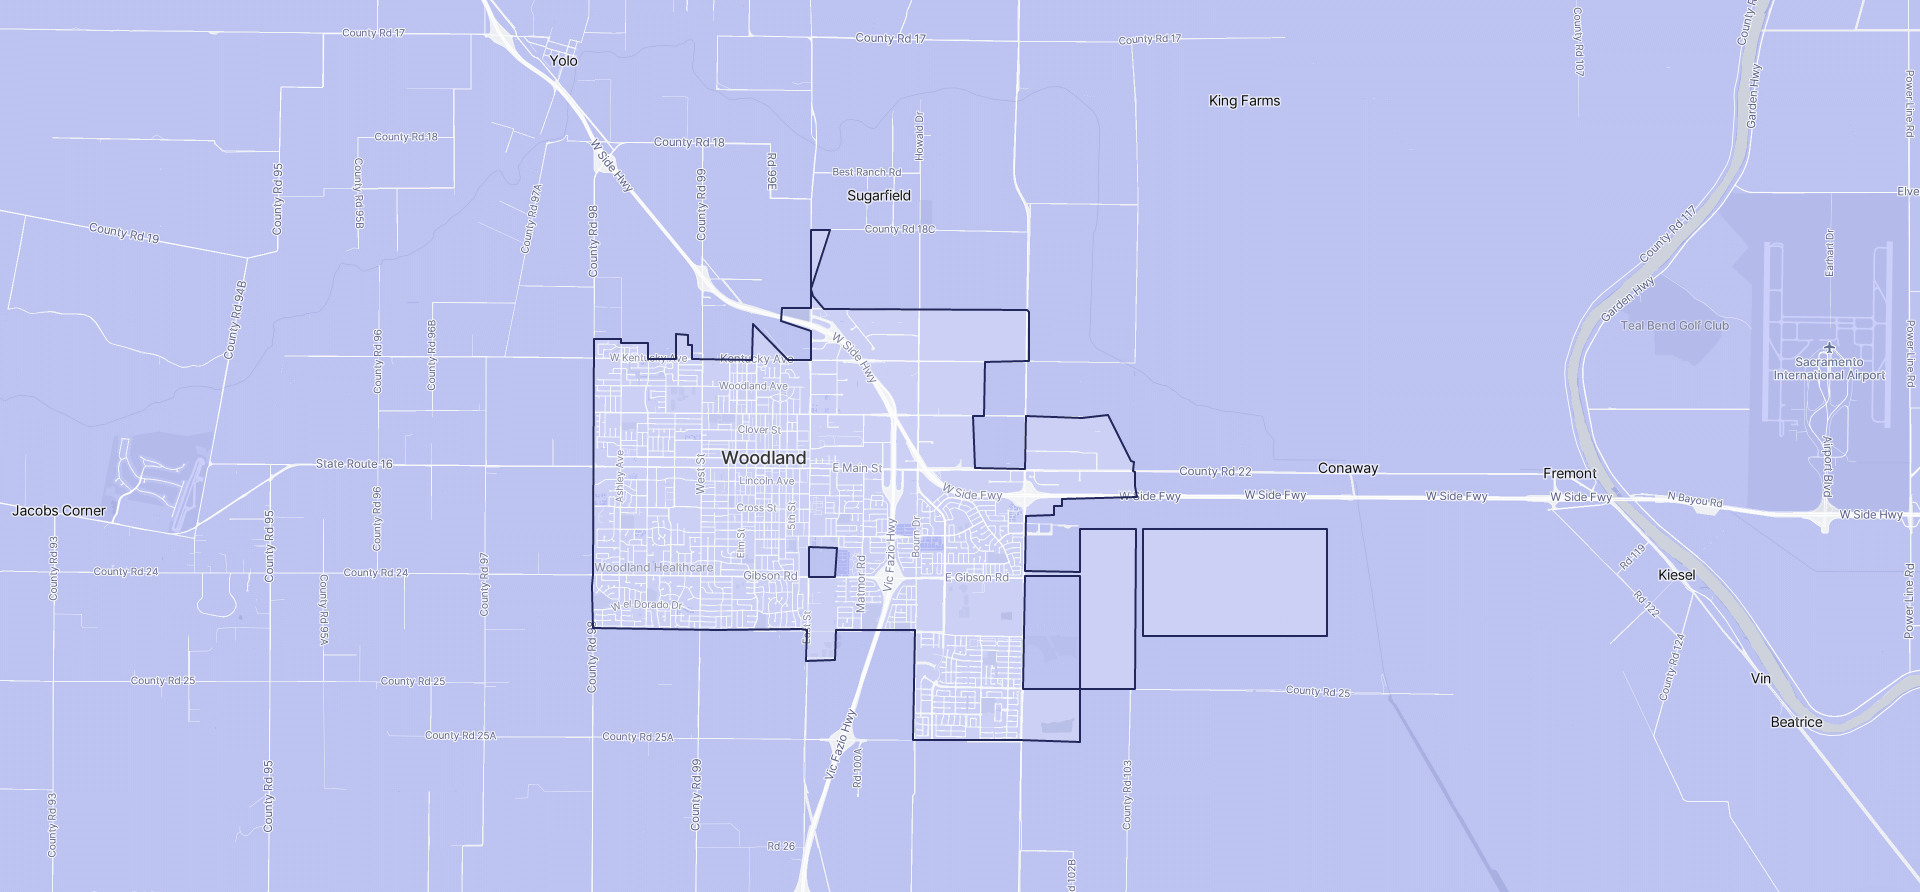 Image of Woodland boundaries on a map.